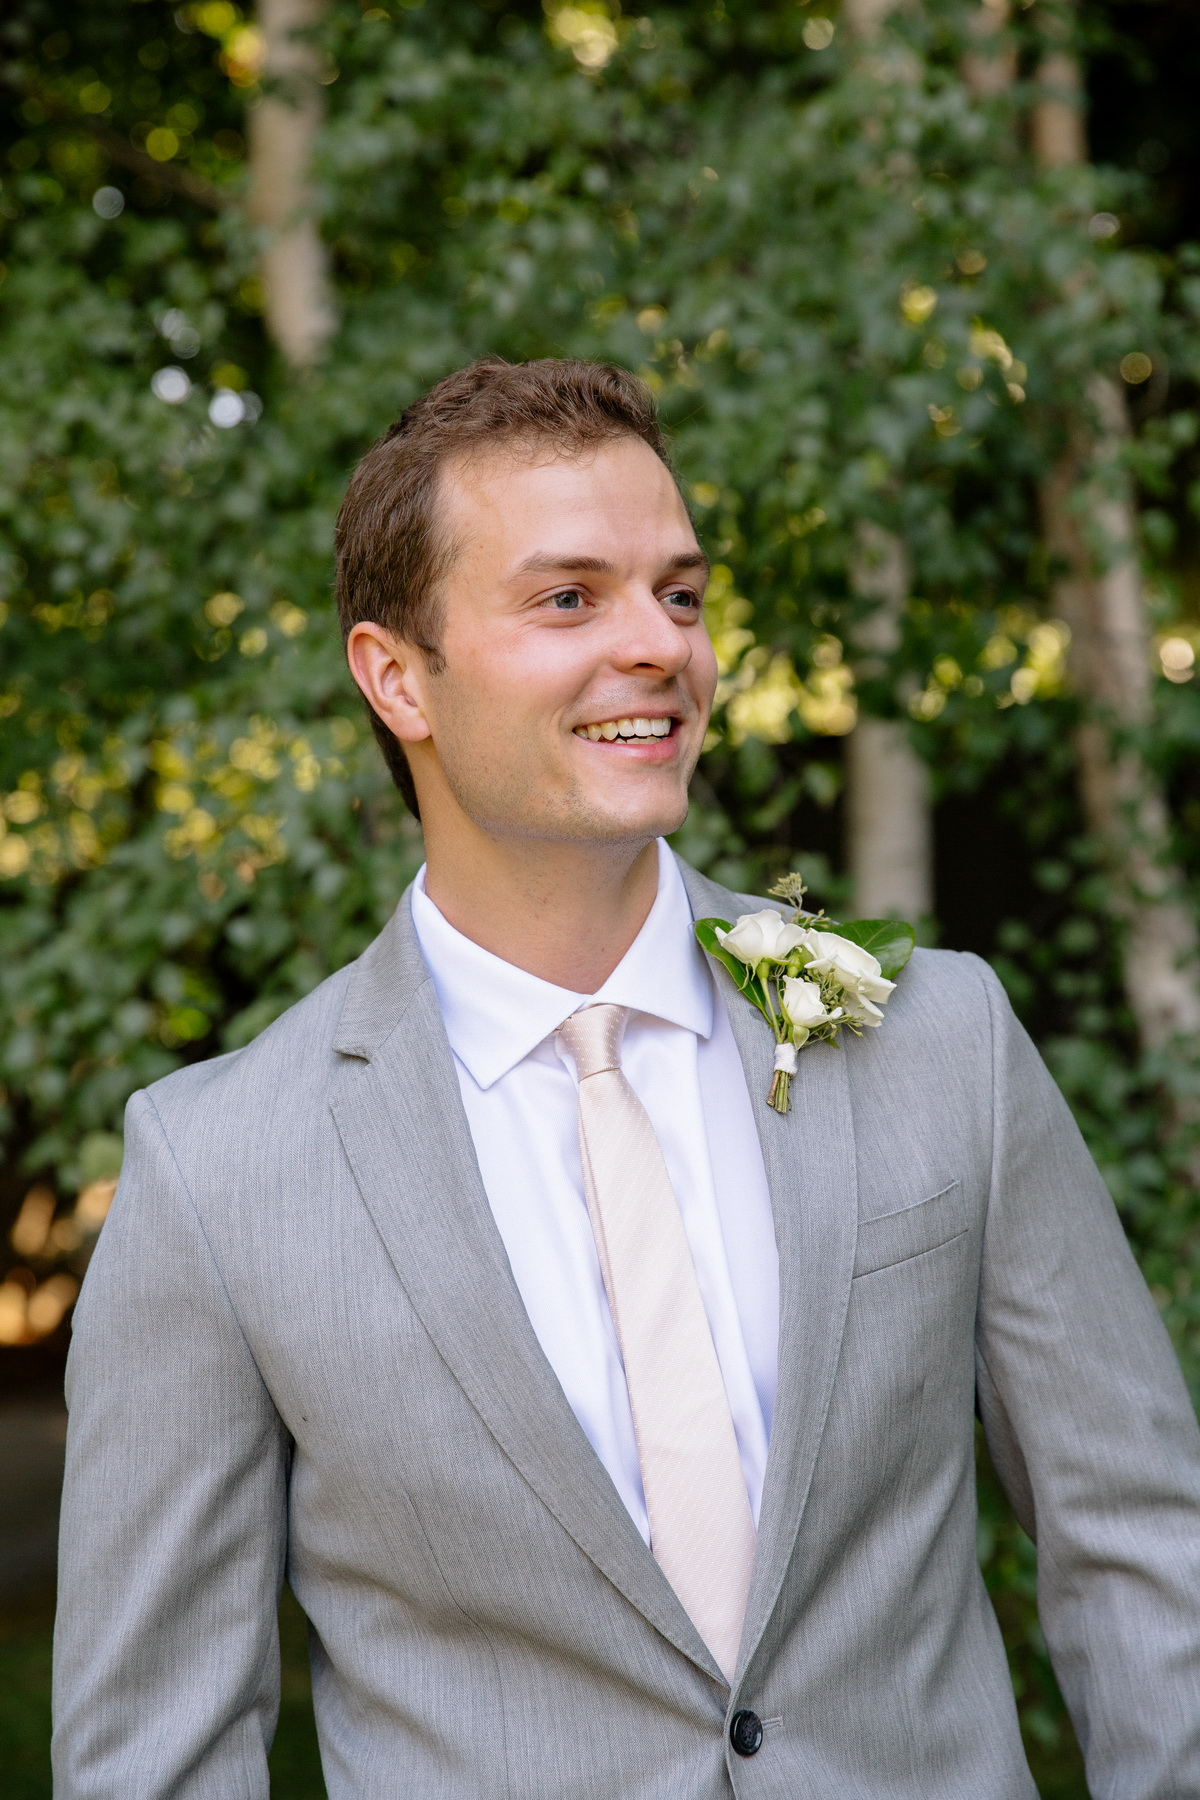 casual portrait of a groom in a grey suit